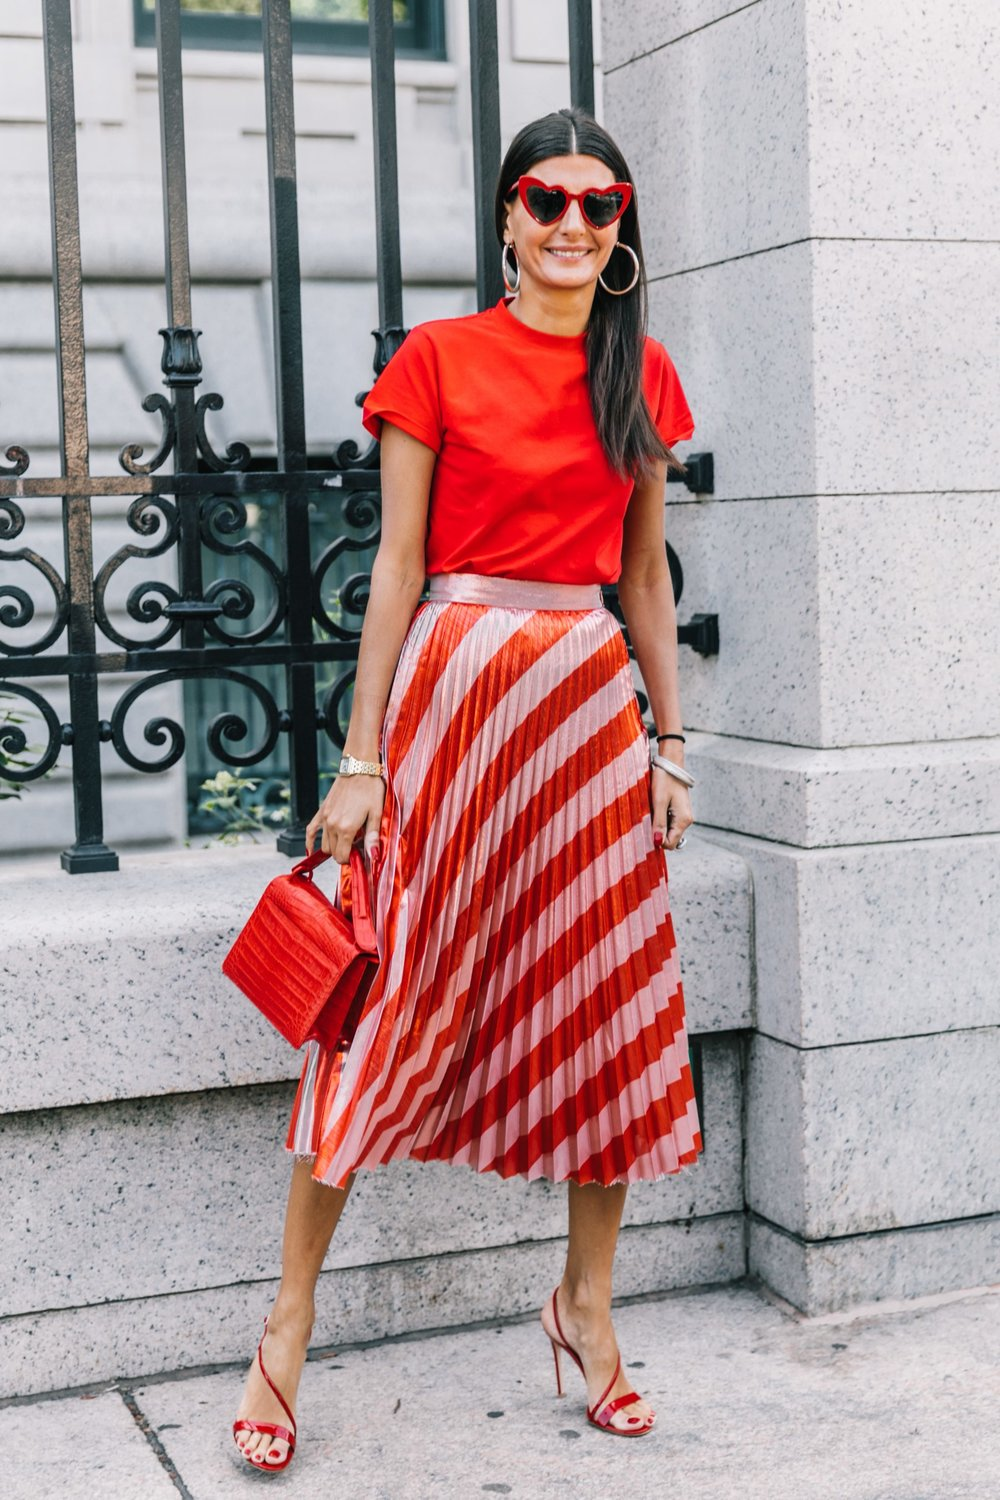 NYFW-SS18-New_York_Fashion_Week-Street_Style-Vogue-Collage_Vintage-70-1800x2700.jpg